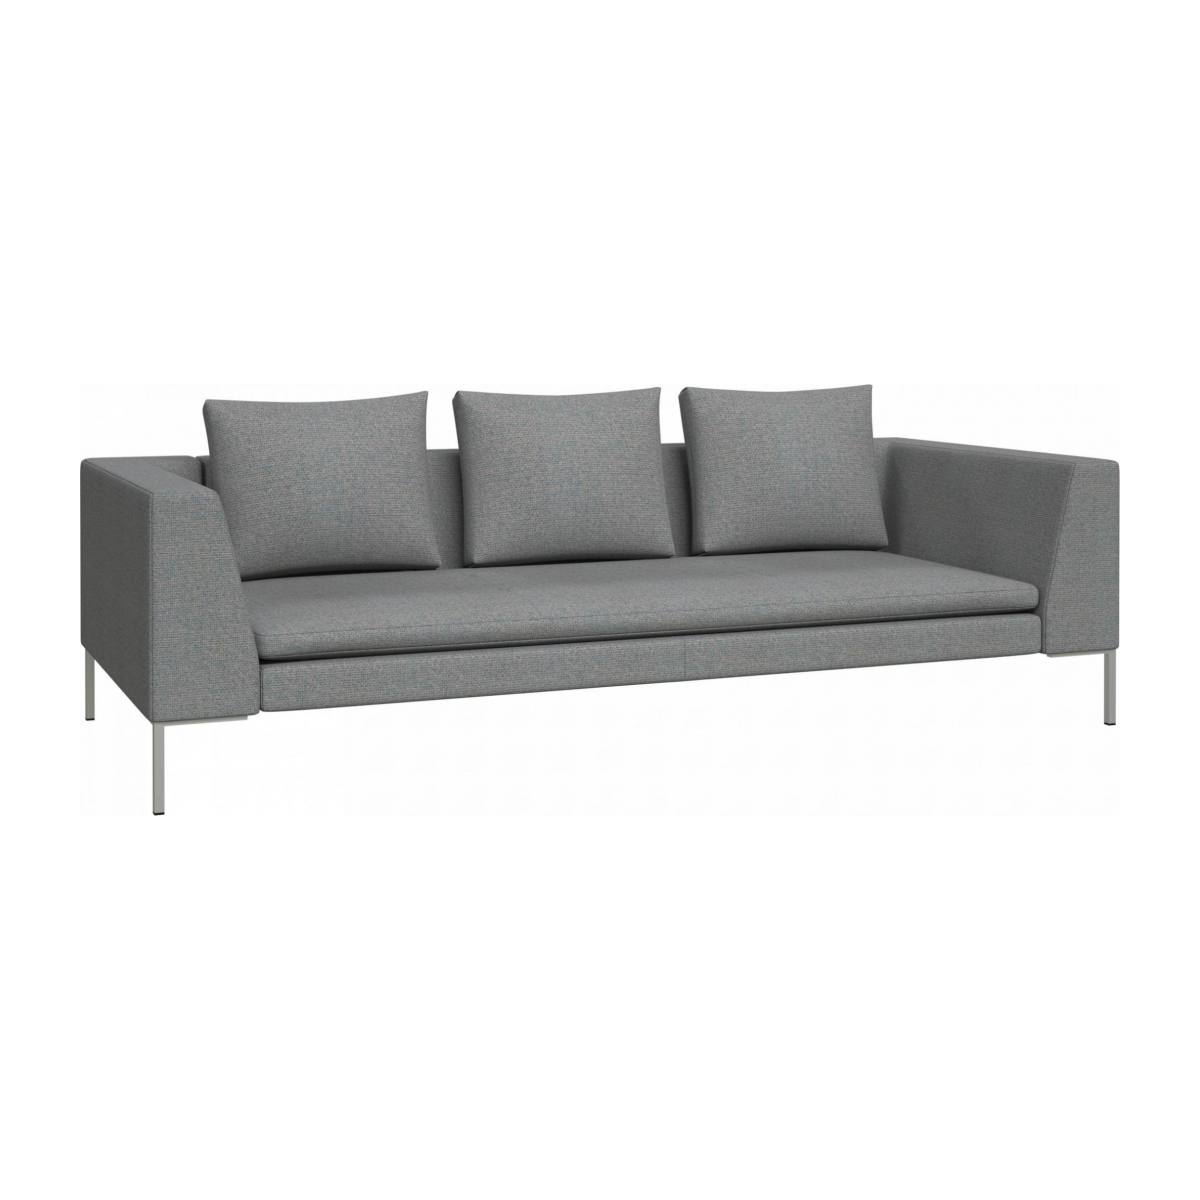 3 seater sofa in Lecce fabric, blue reef n°2